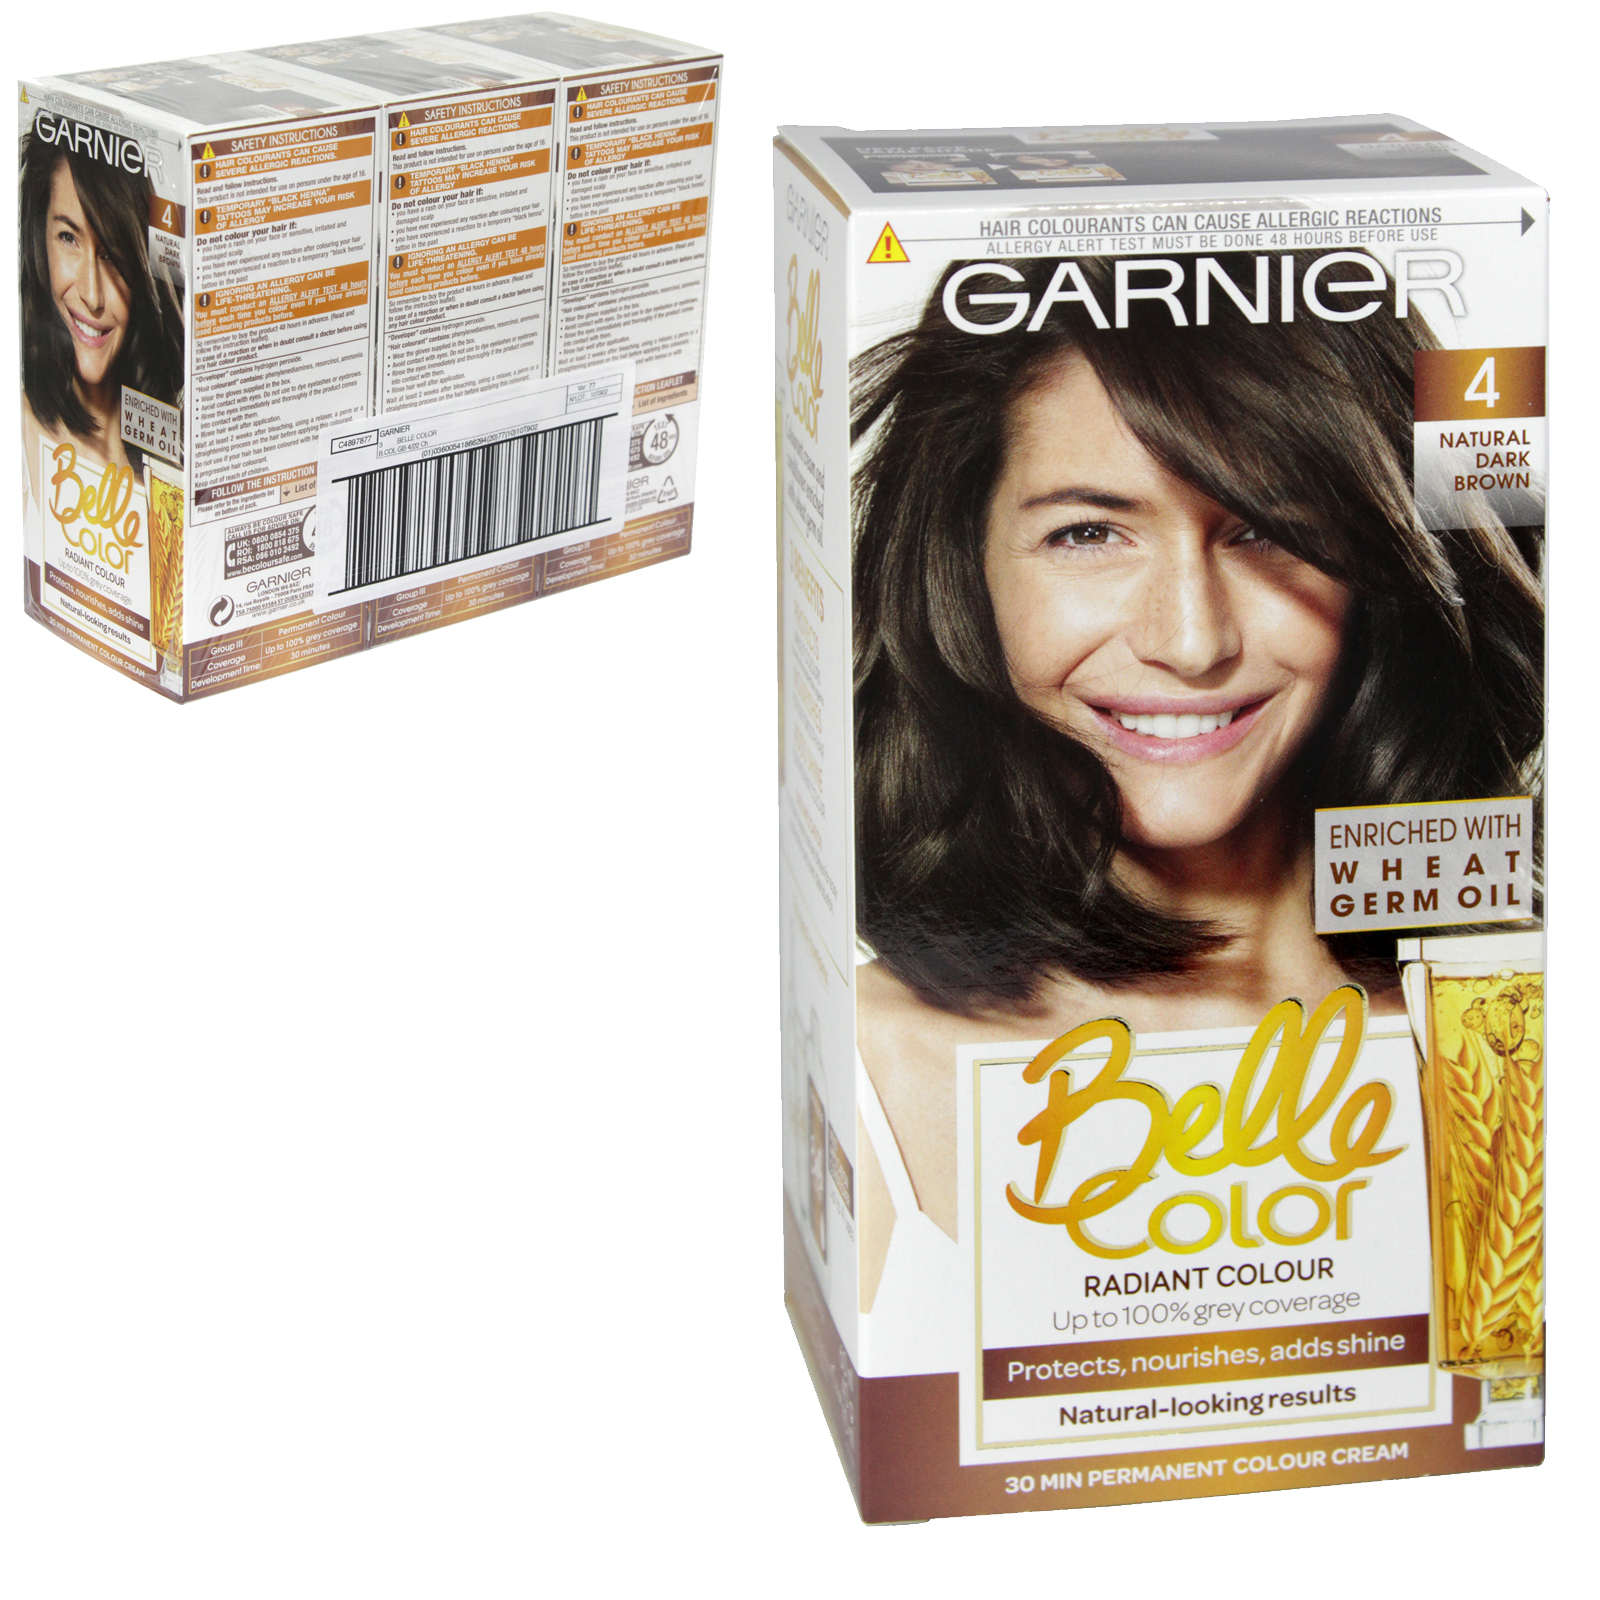 BELLE COLOR 4 NATURAL DARK BROWN X3